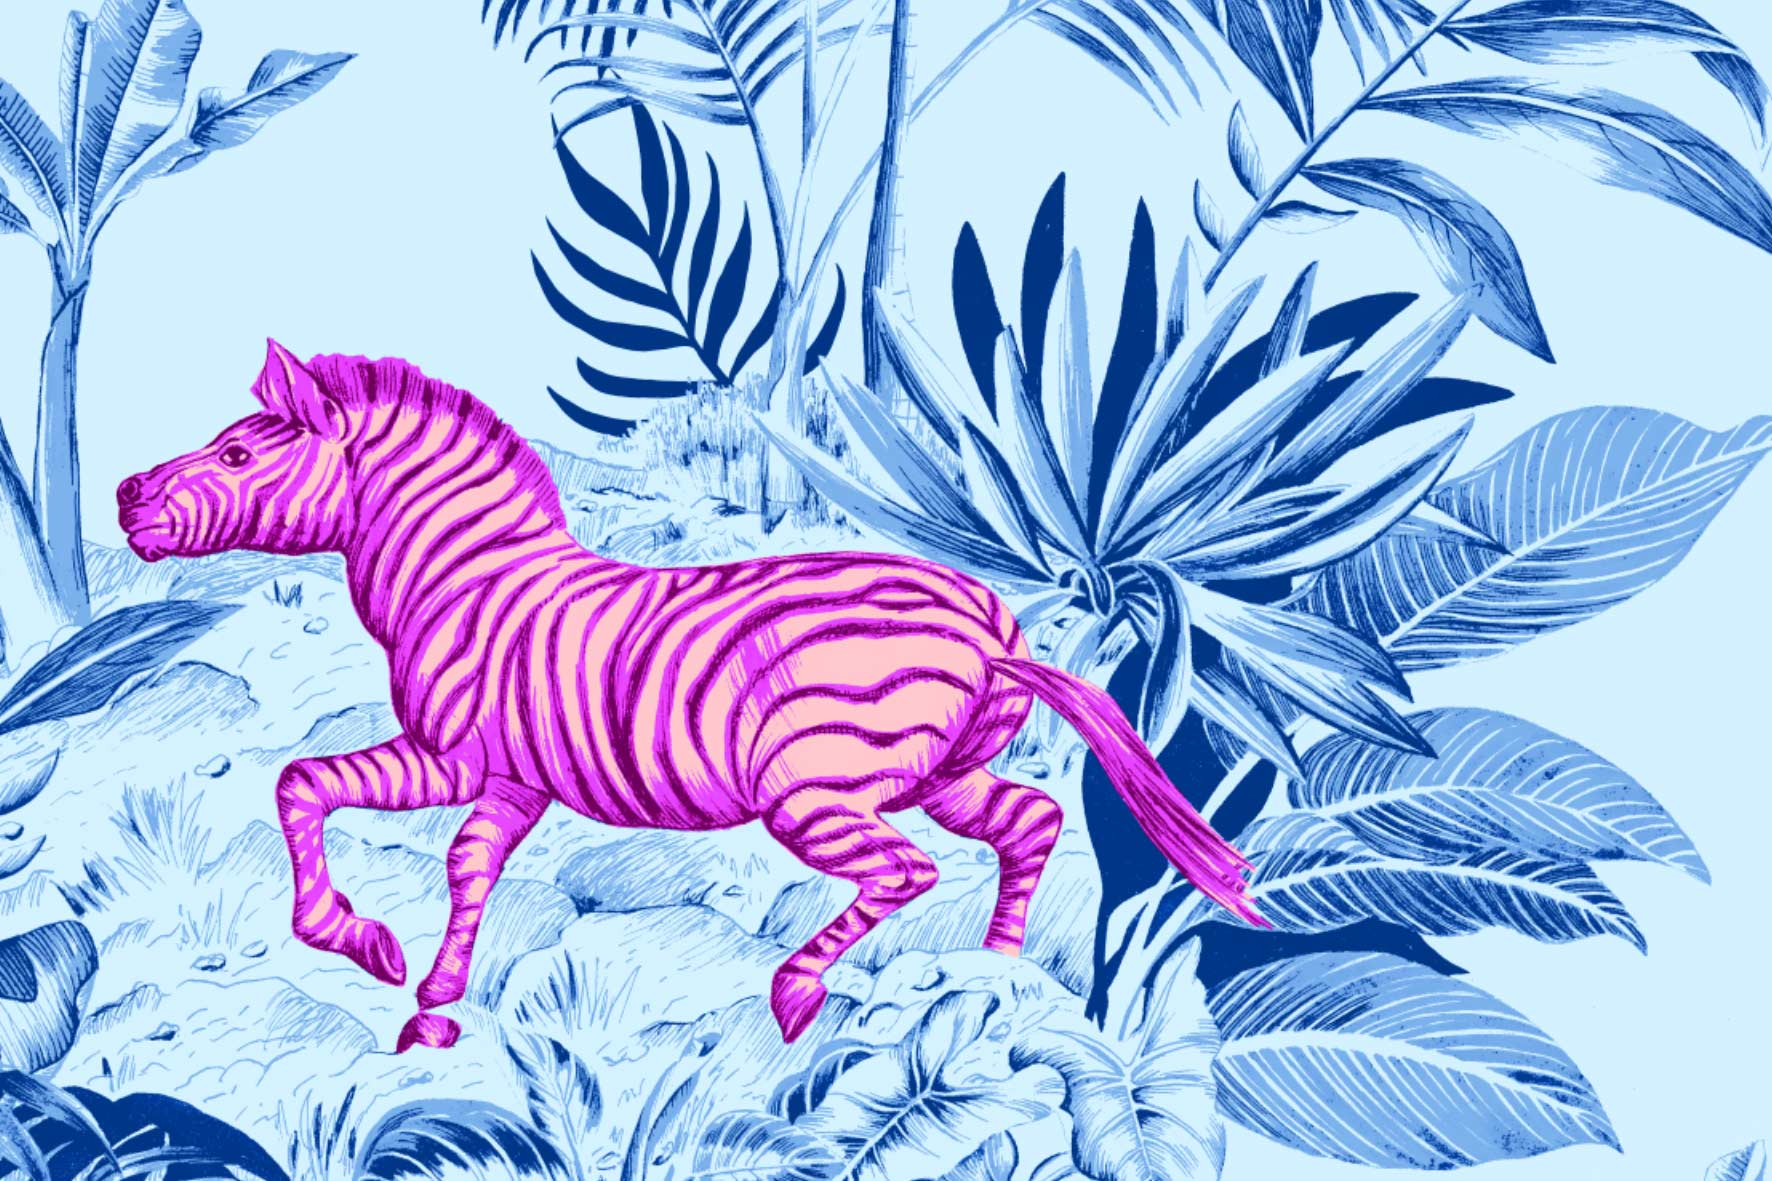 Zebra-Jungle